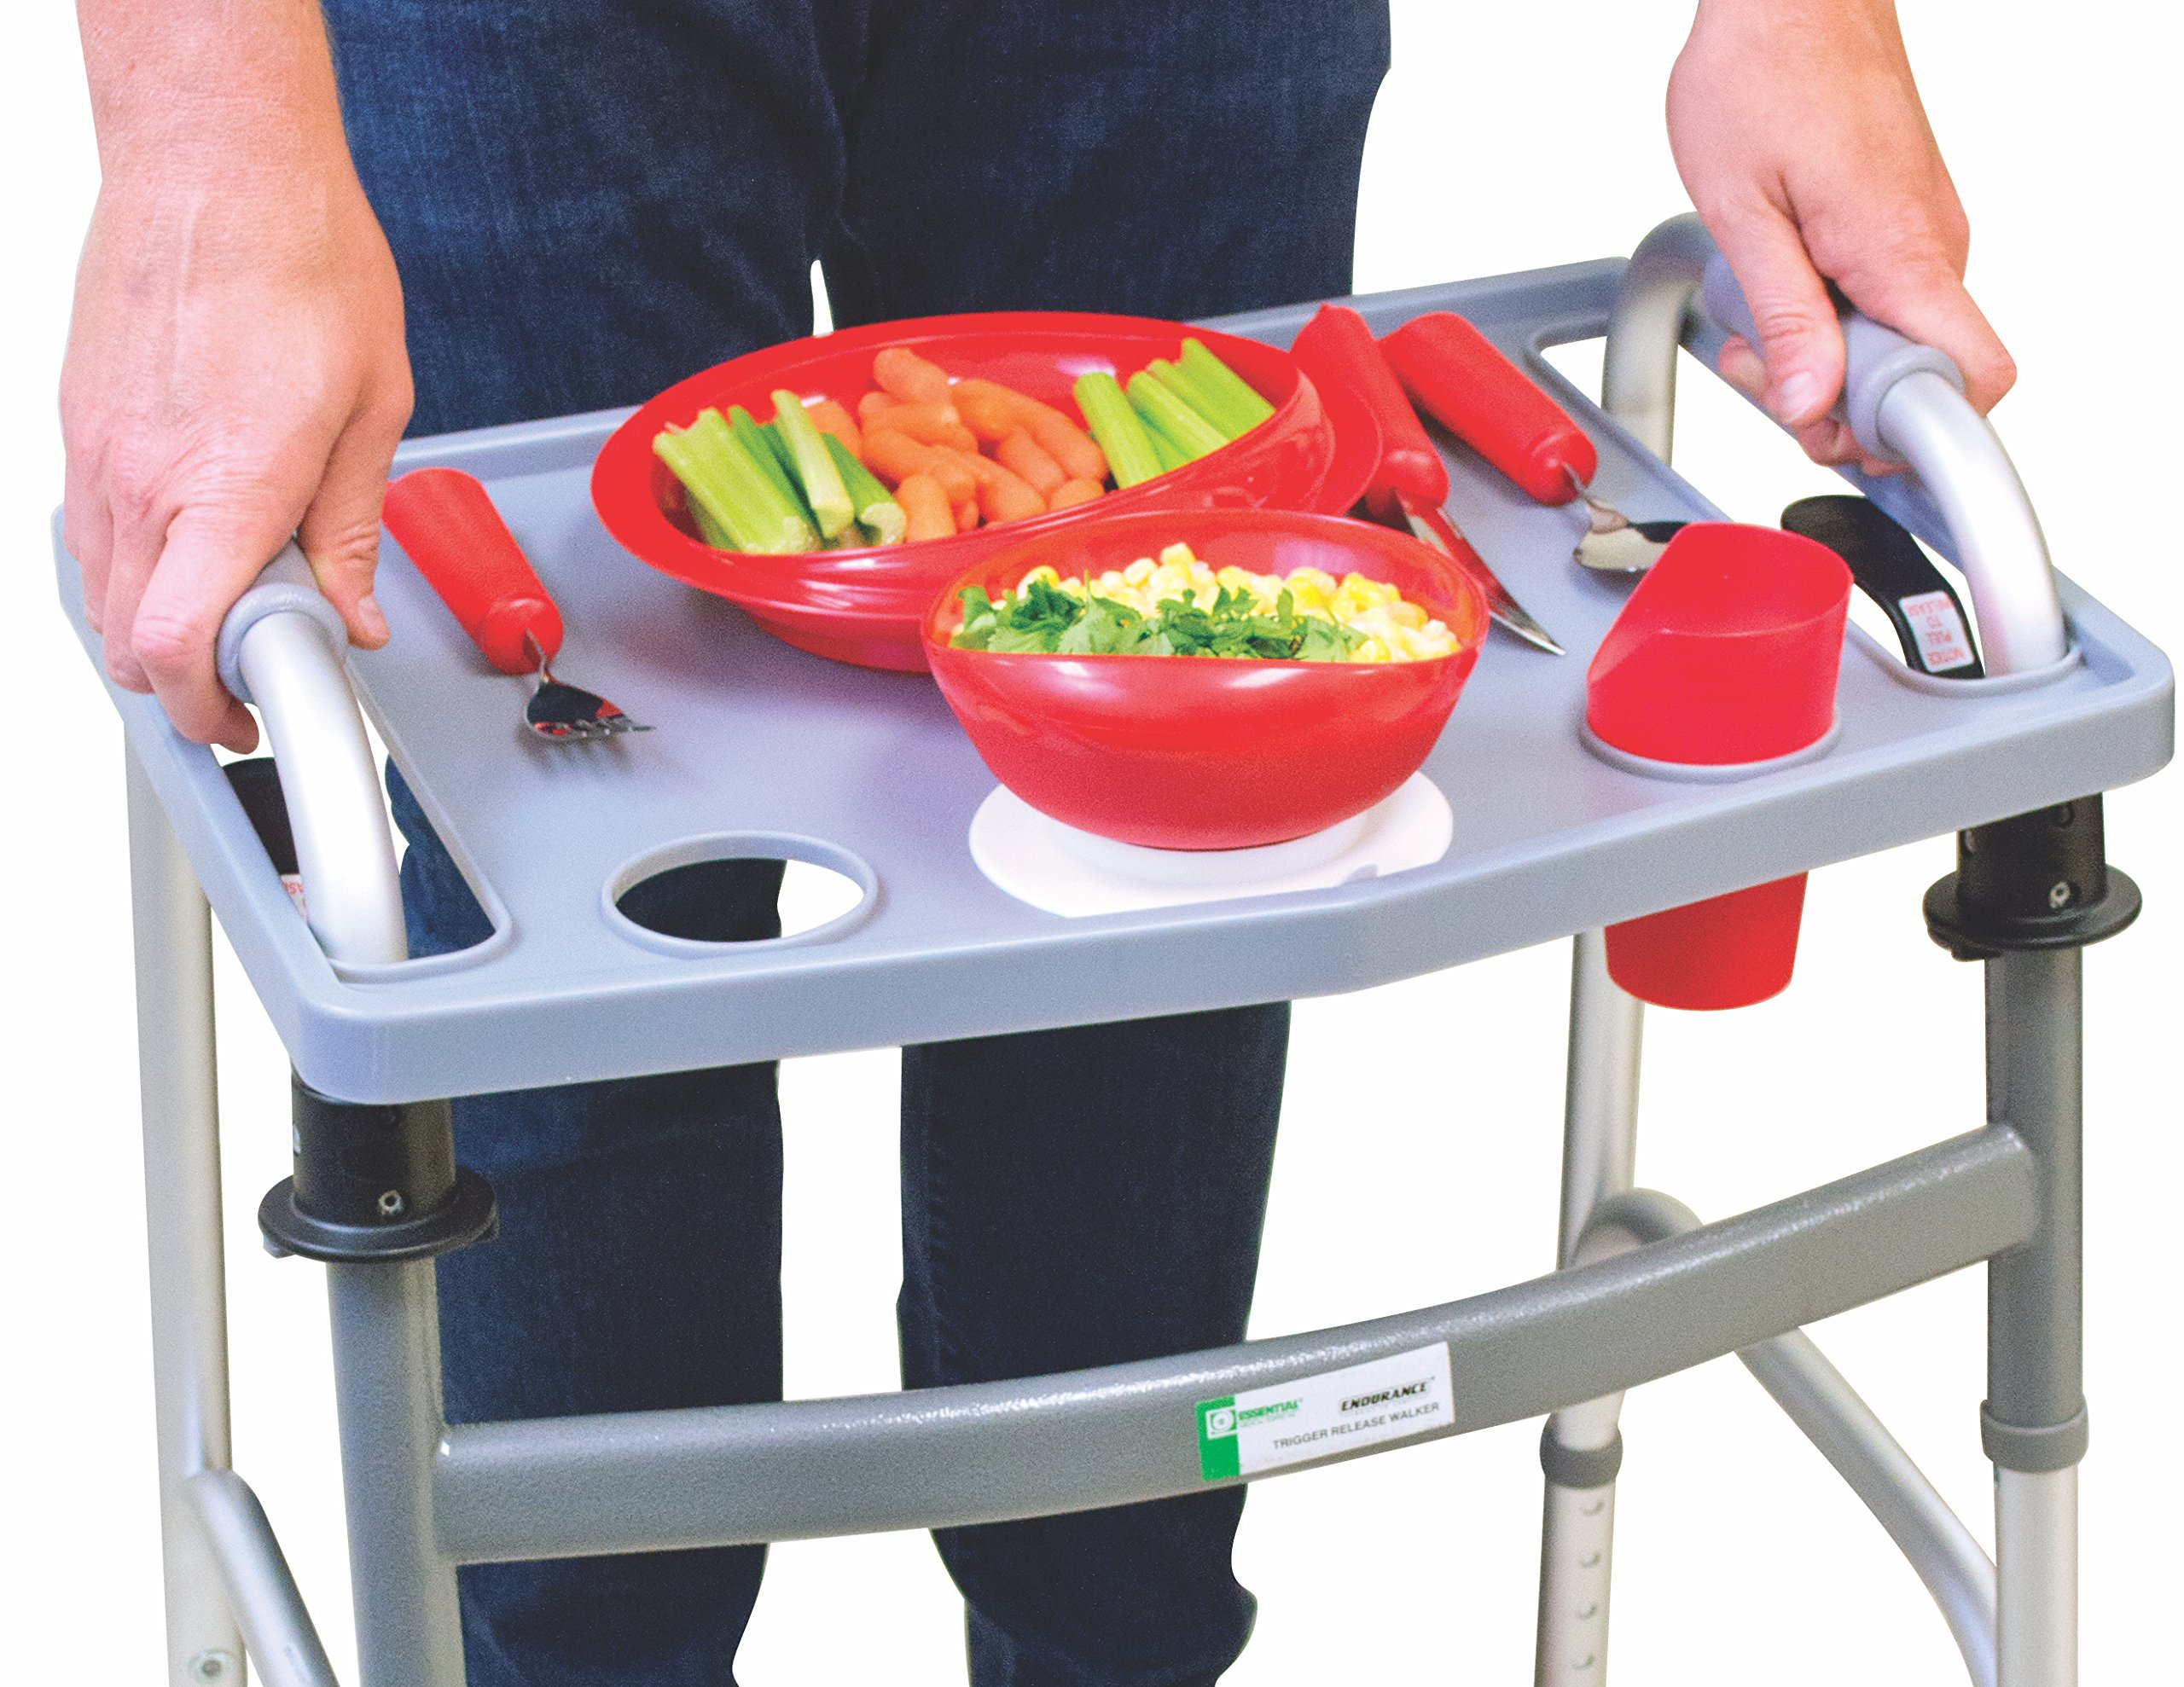 Essential Medical Supply Universal Folding Walker Tray with Cup Holders